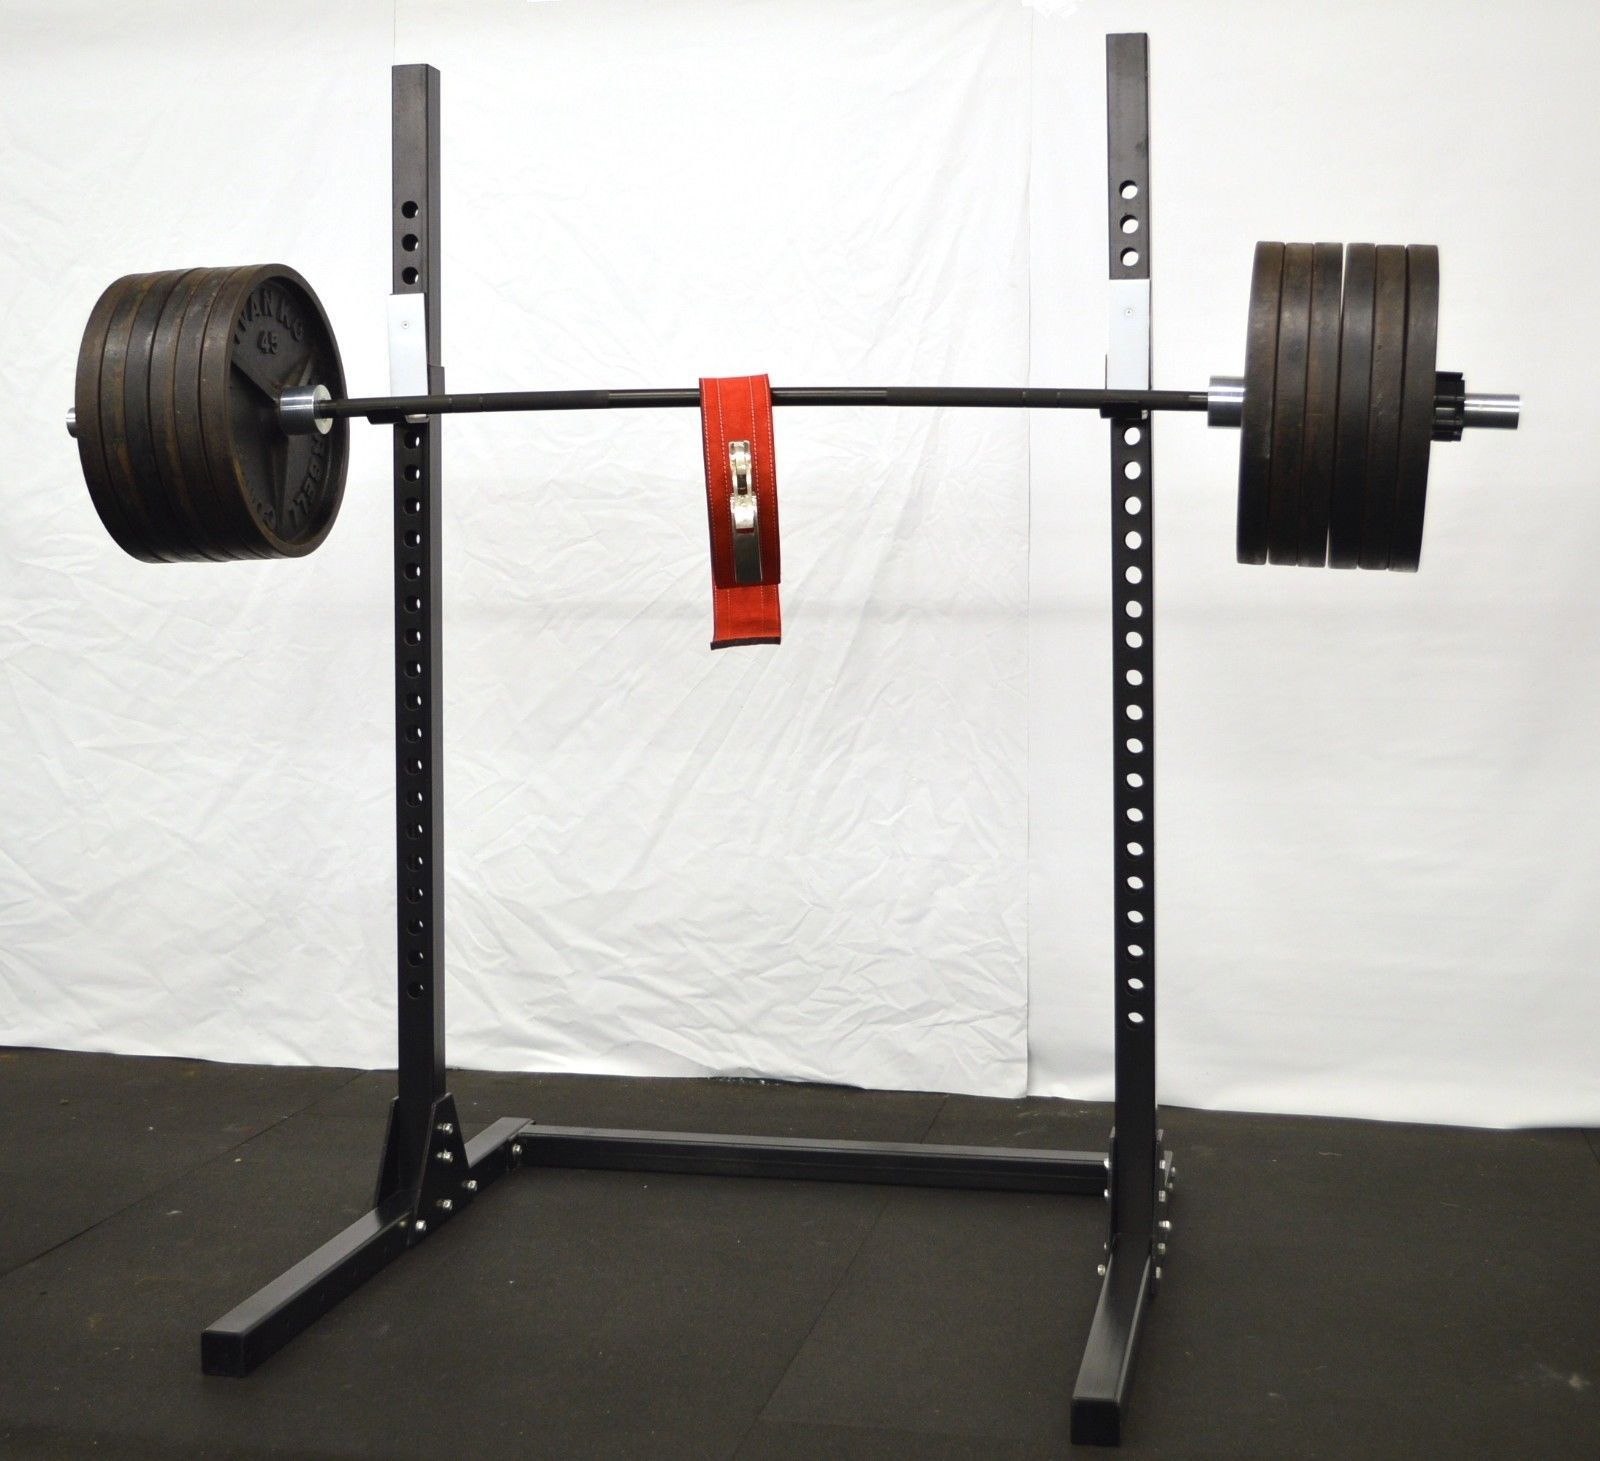 lifting squat free adjustable get fitness guides strength home rack gym exercise workout deals press training quotations olympic life shopping new bench cheap body find